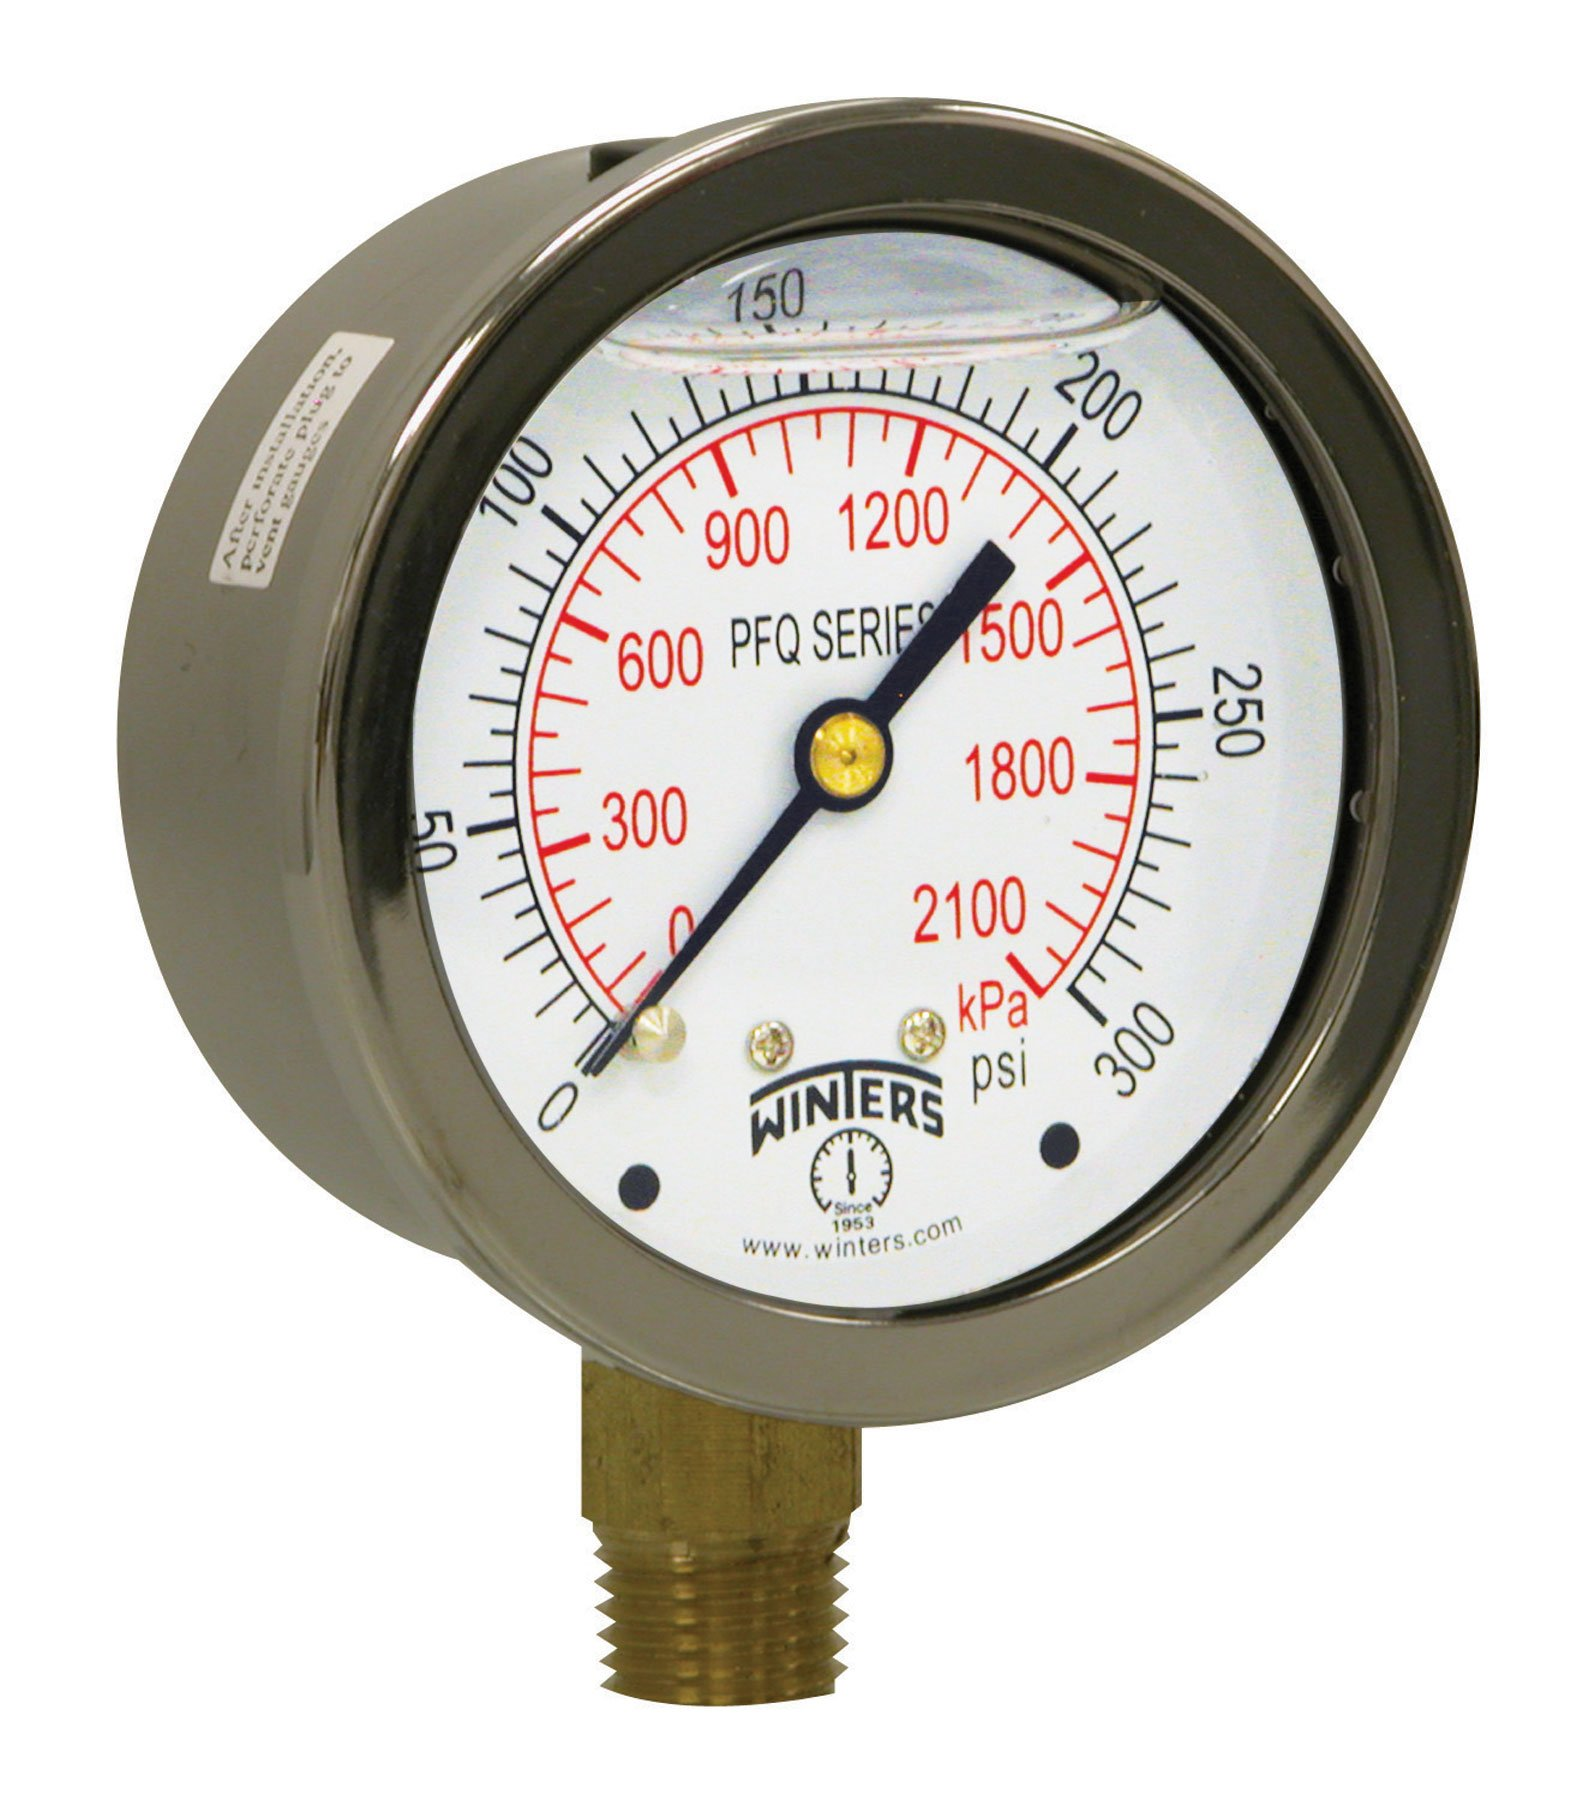 Winters PFQ Series Stainless Steel 304 Dual Scale Liquid Filled Pressure Gauge with Brass Internals, 0-300 psi/kpa,2-1/2'' Dial Display, +/-1.5% Accuracy, 1/4'' NPT Bottom Mount